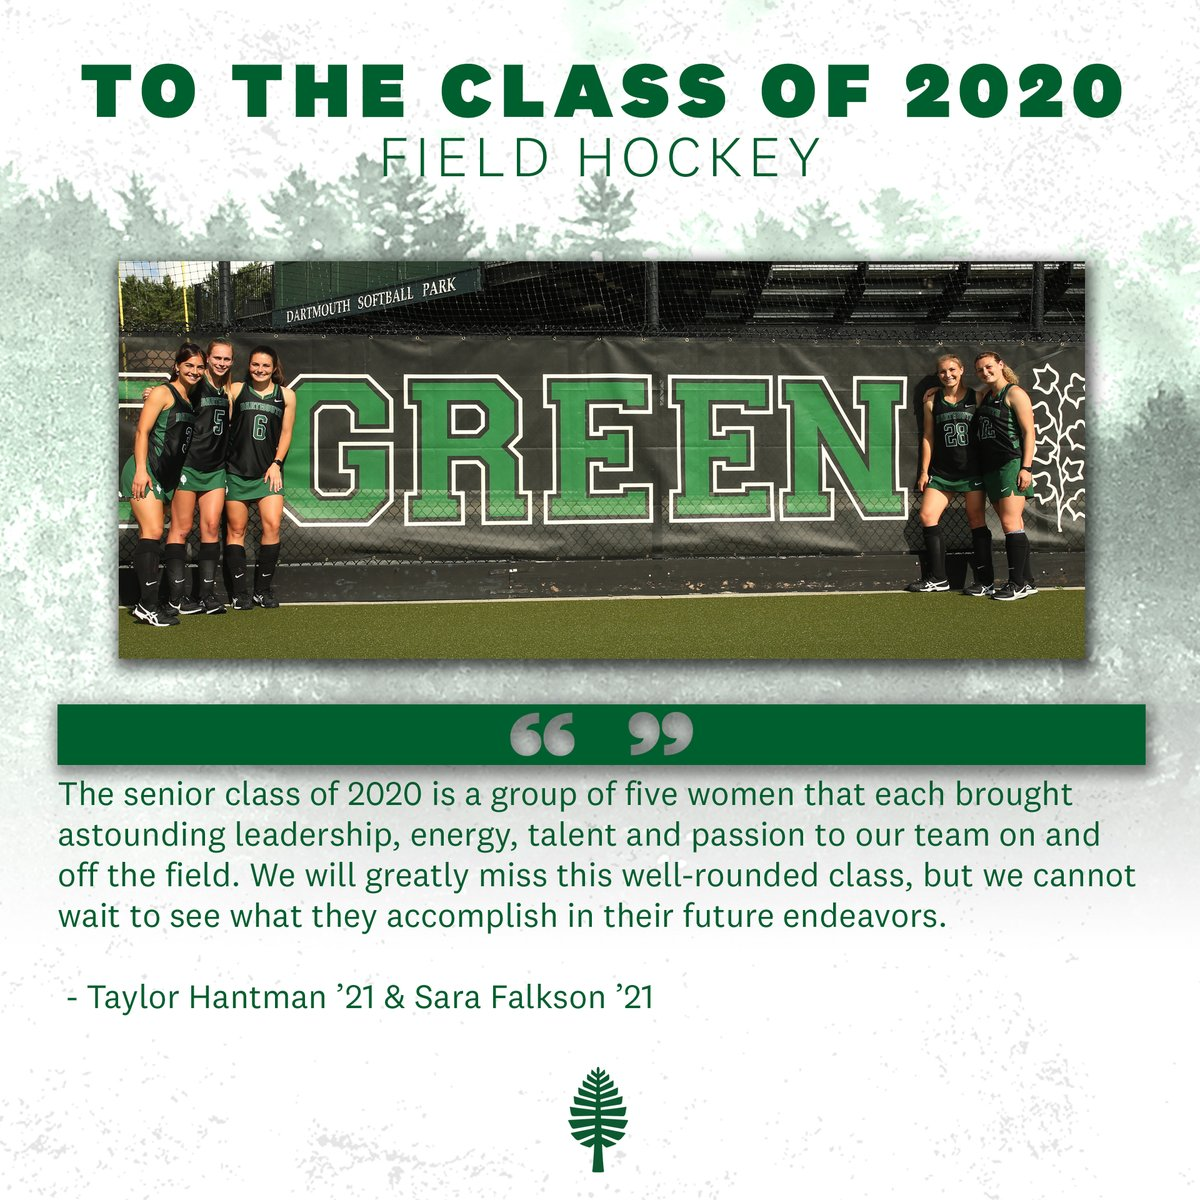 To our @DartmouthFH seniors: https://t.co/BF90rSr4HN